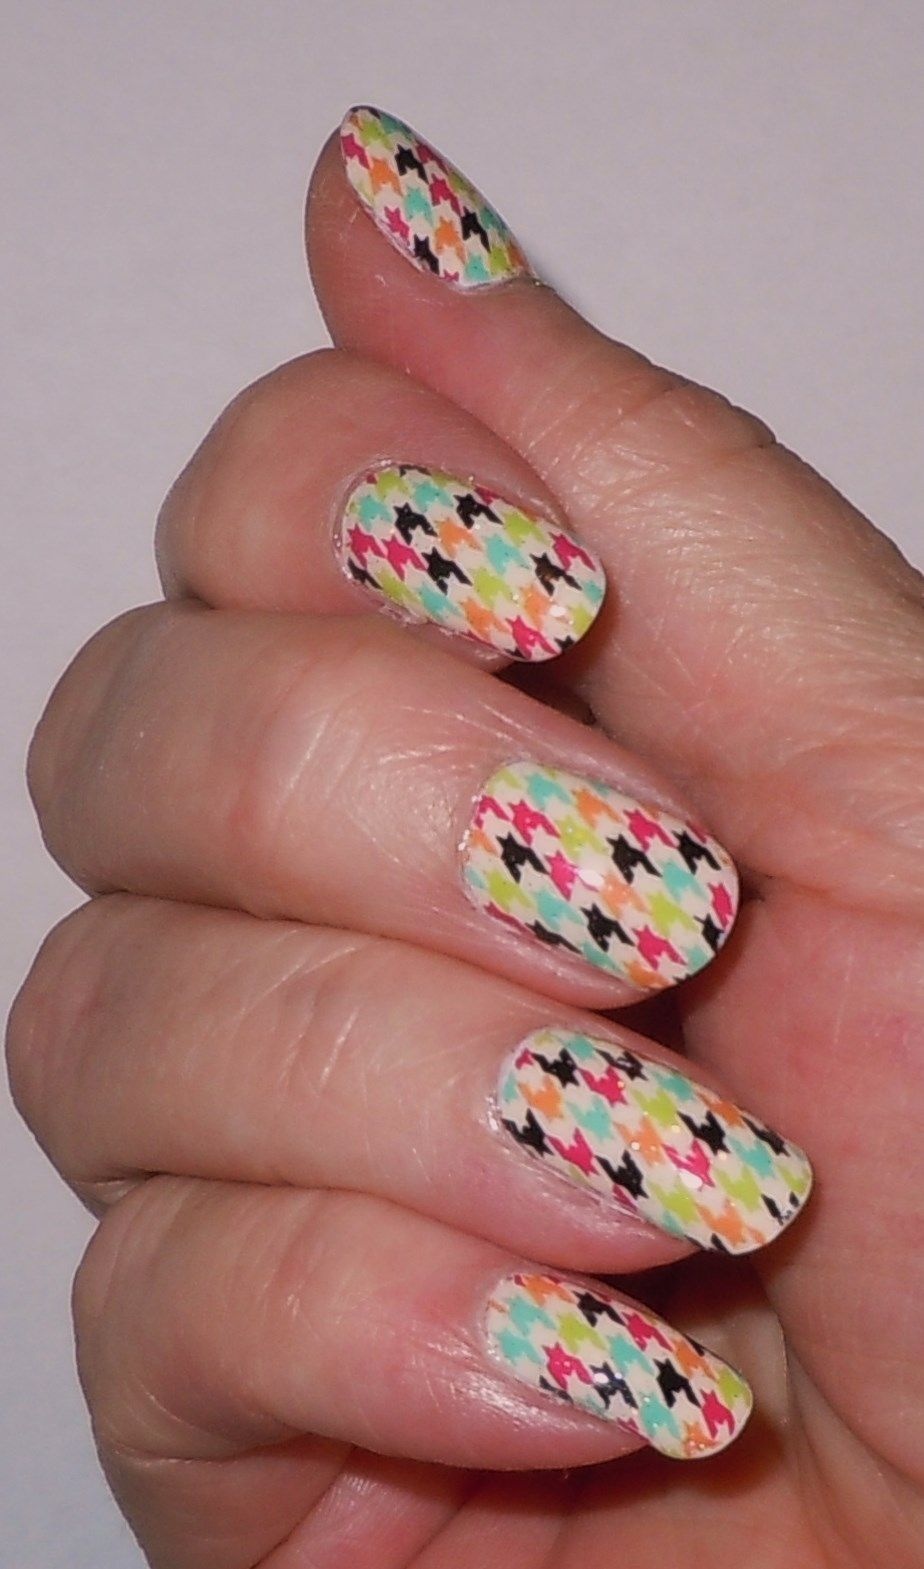 full nail water decals made this the easiest manicure ever!